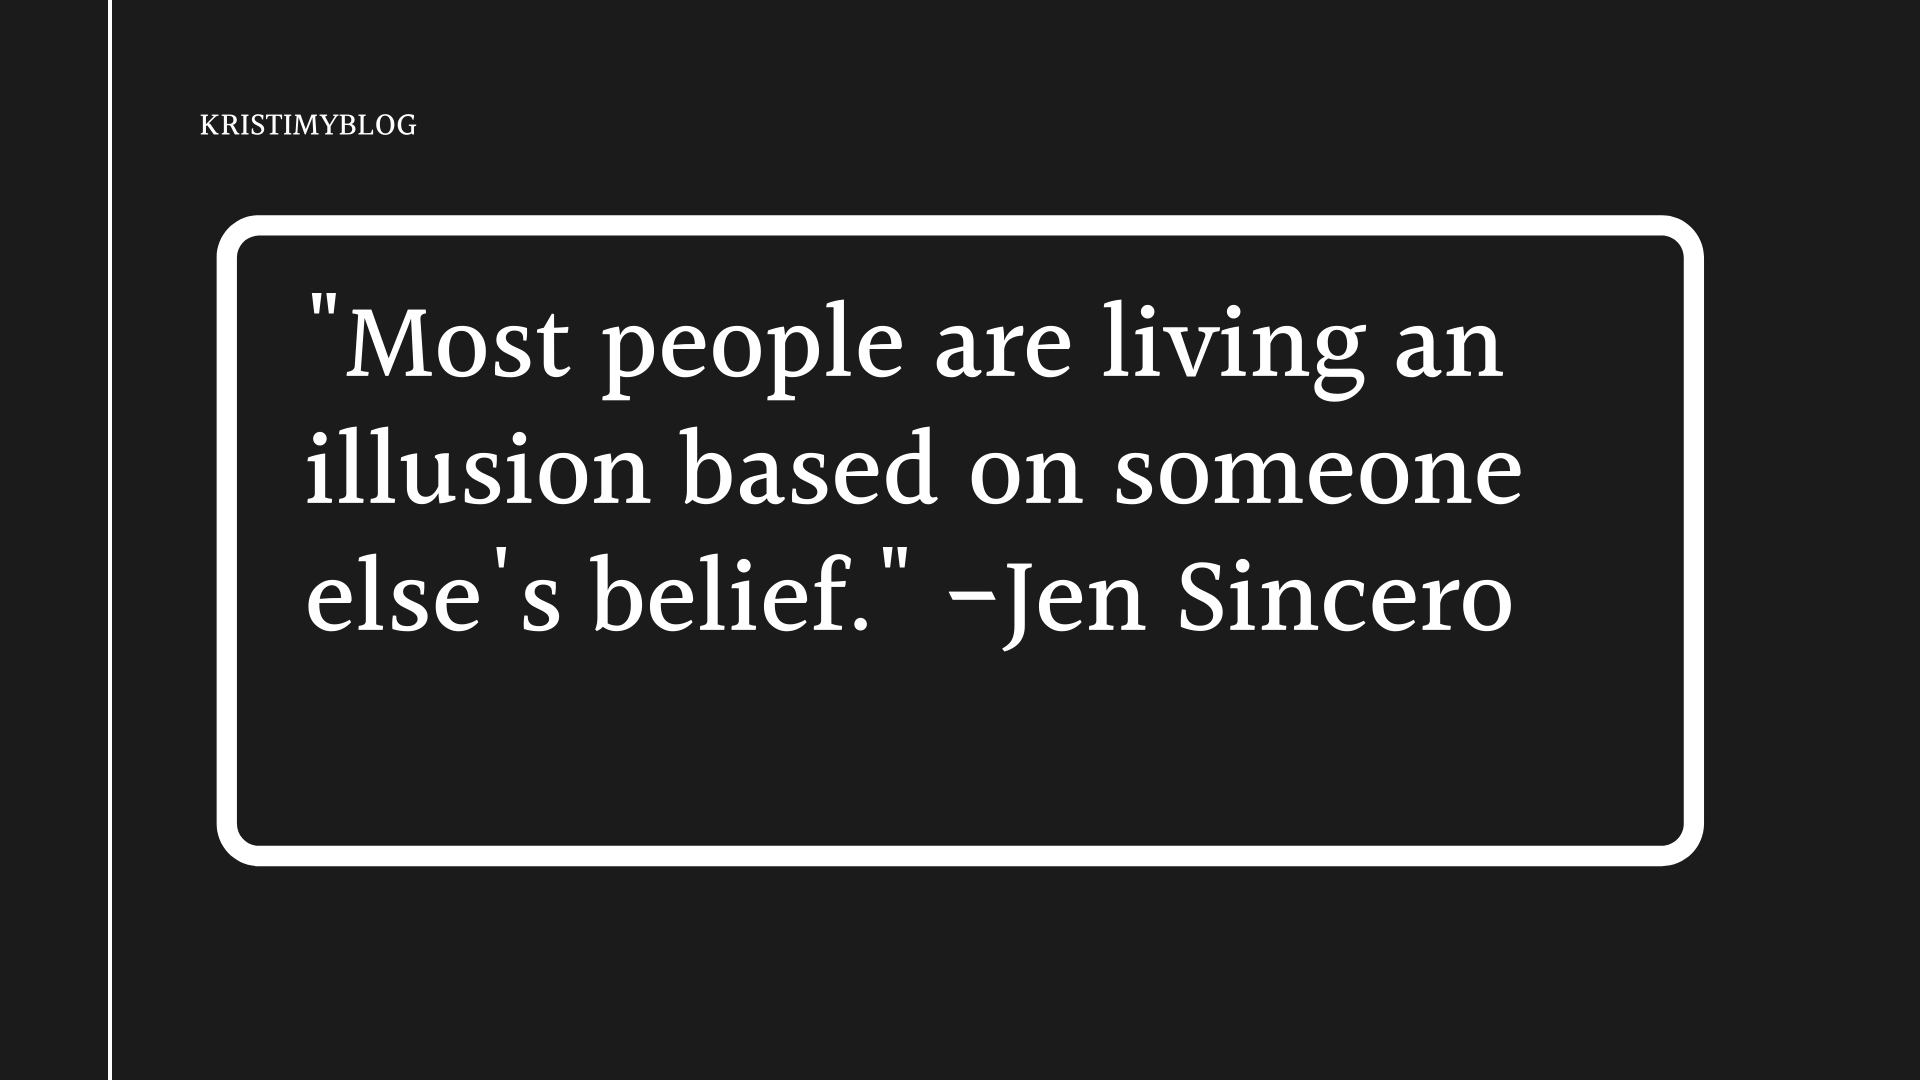 """Most people are living an illusion based on someone else's belief."" -Jen Sincero"